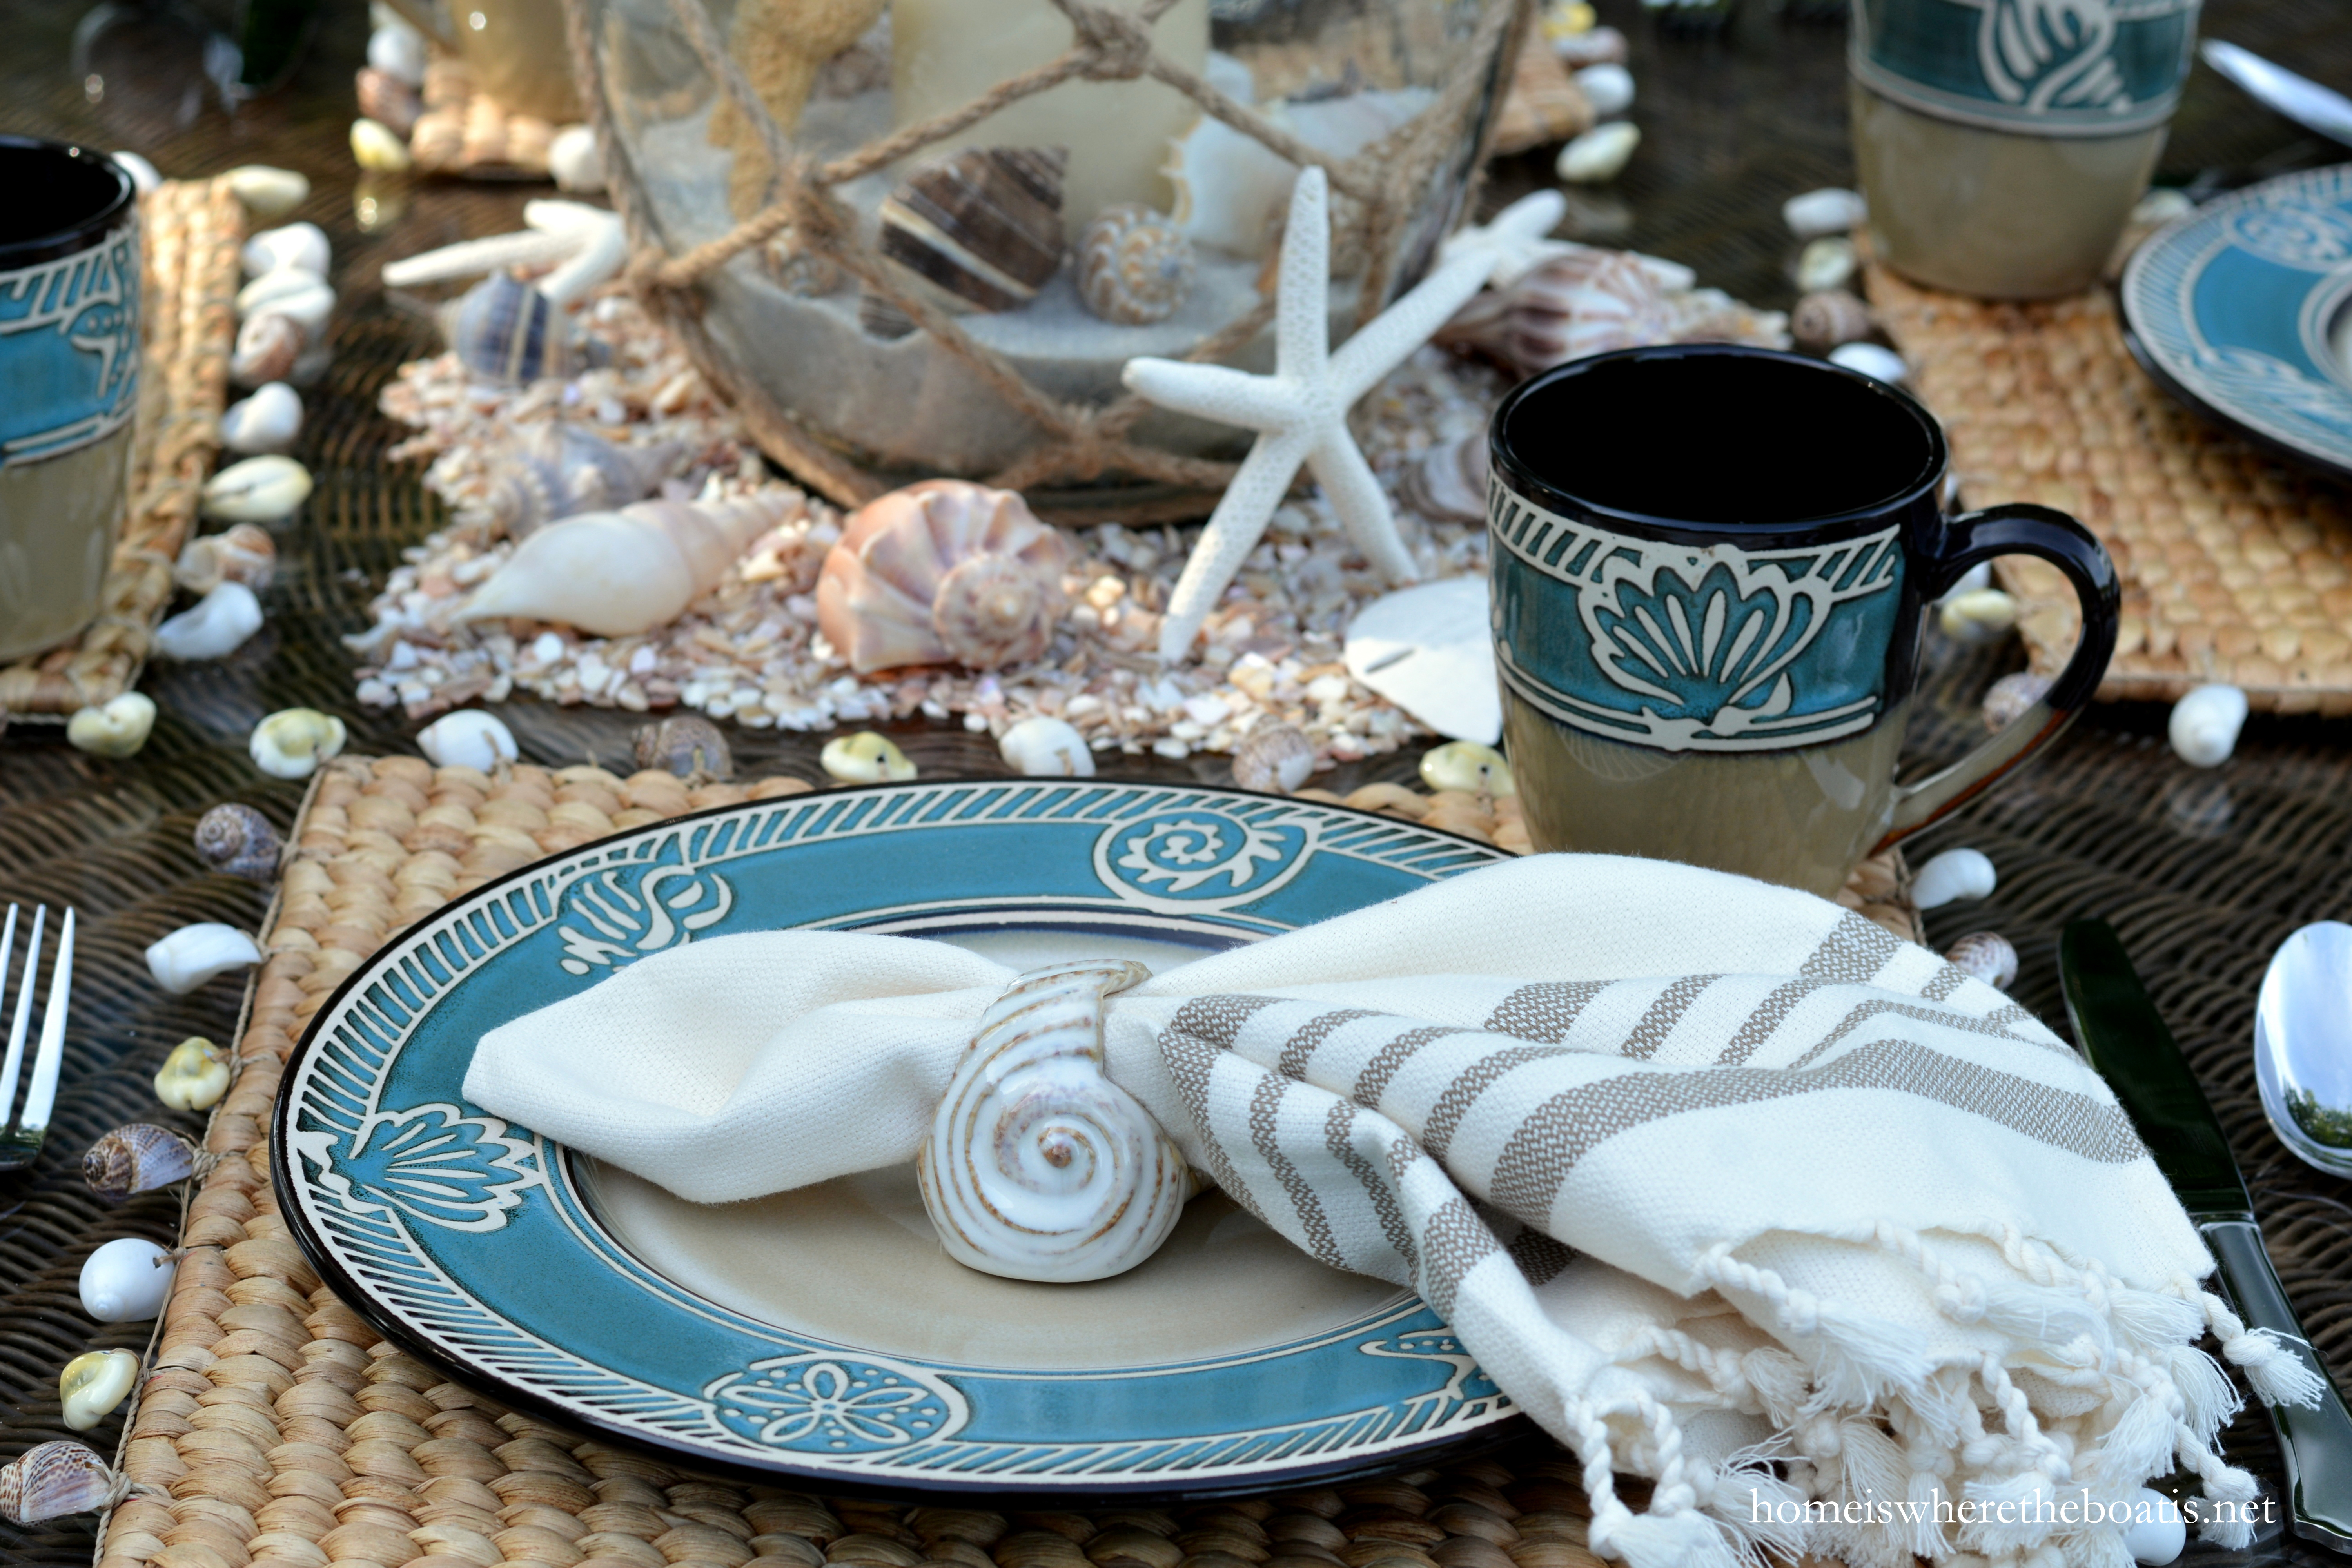 Square water hyacinth placemats with a fringed shell border washed ashore from World Market several years ago. & Beach-themed Table for Summer with Pfaltzgraff Montego \u2013 Home is ...